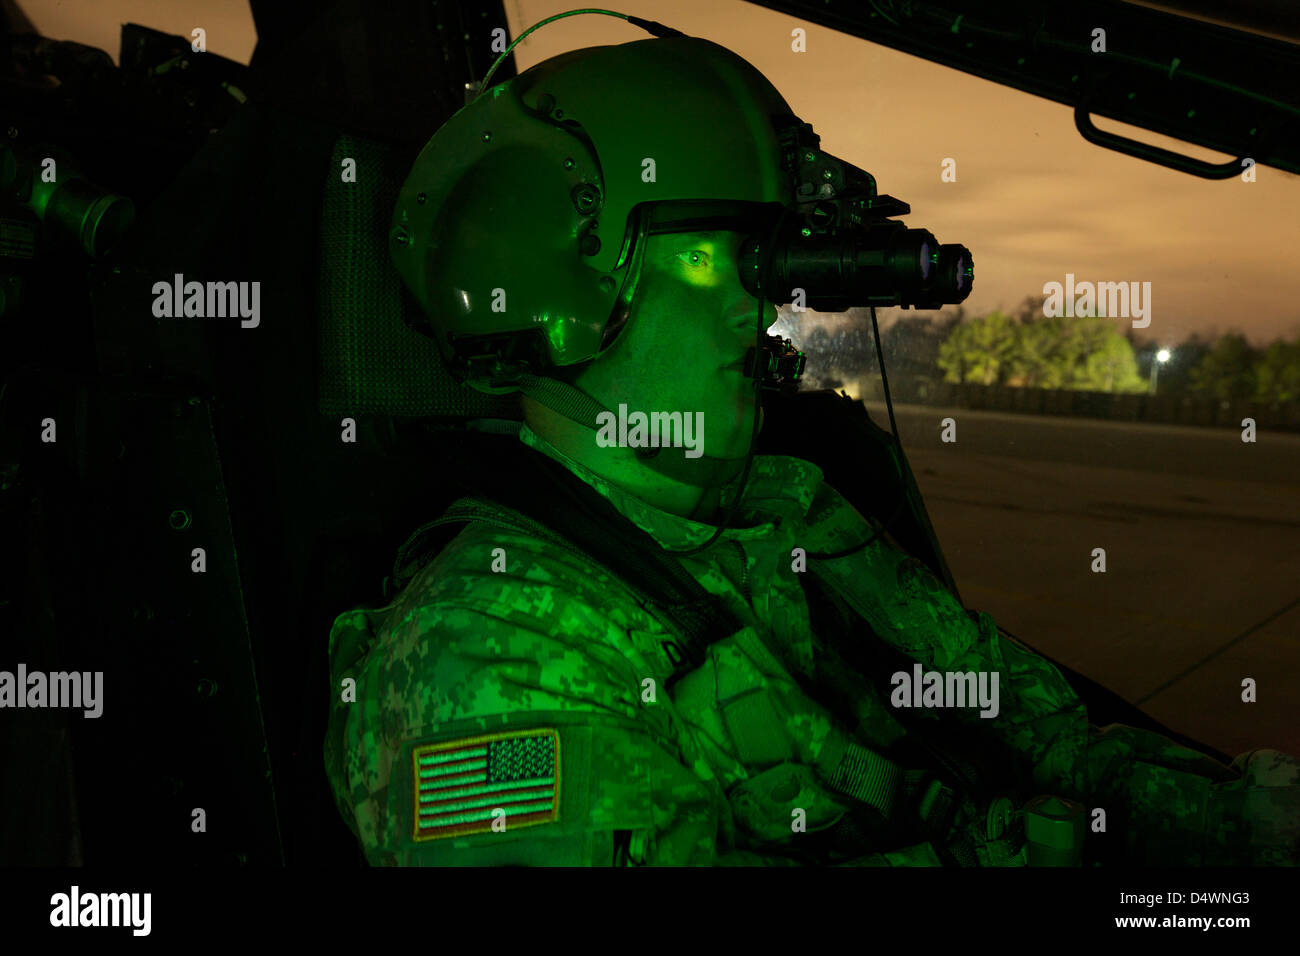 A pilot equipped with night vision goggles in the cockpit